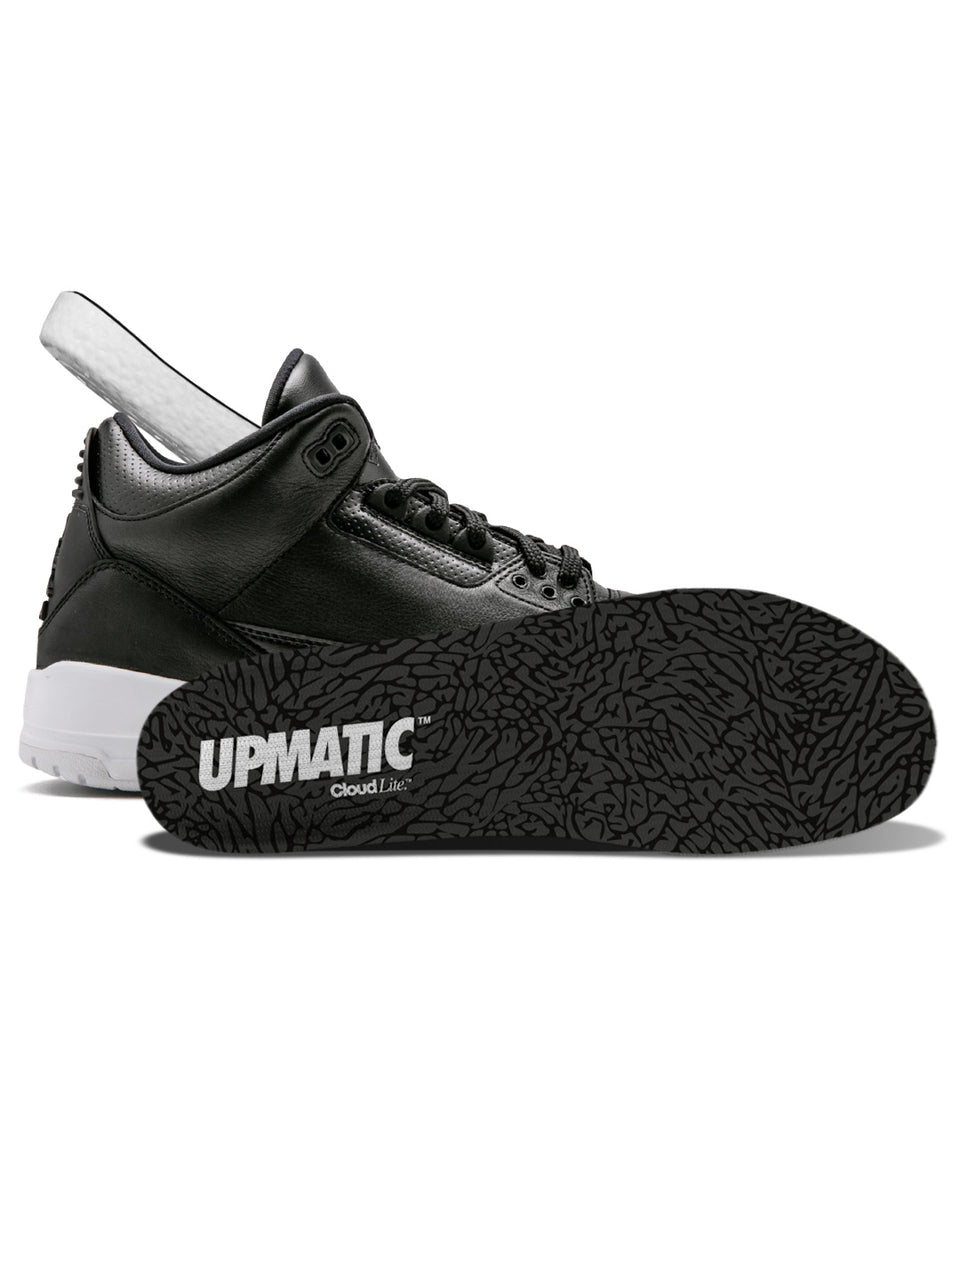 UPMATIC Cloudlite Supercharged Insoles 1988 Black Elephant Limited Edition